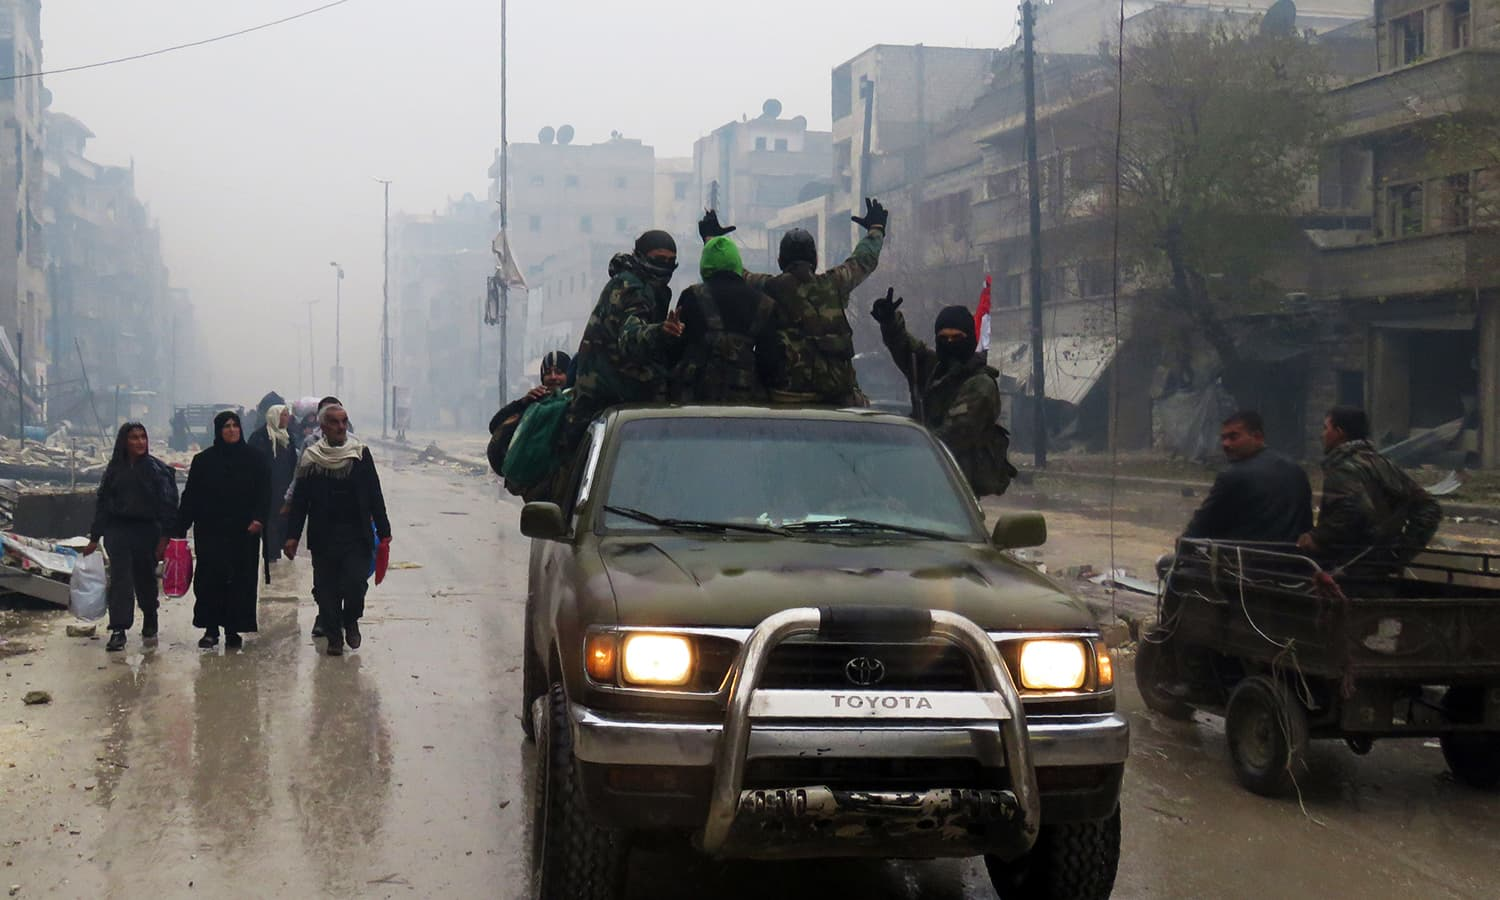 Syrian pro-regime fighters, gesture as they drive past resident fleeing violence in the restive Bustan al-Qasr neighbourhood, in Aleppo's Fardos neighbourhood on December 13, 2016, after regime troops retook the area from rebel fighters. ─ AFP